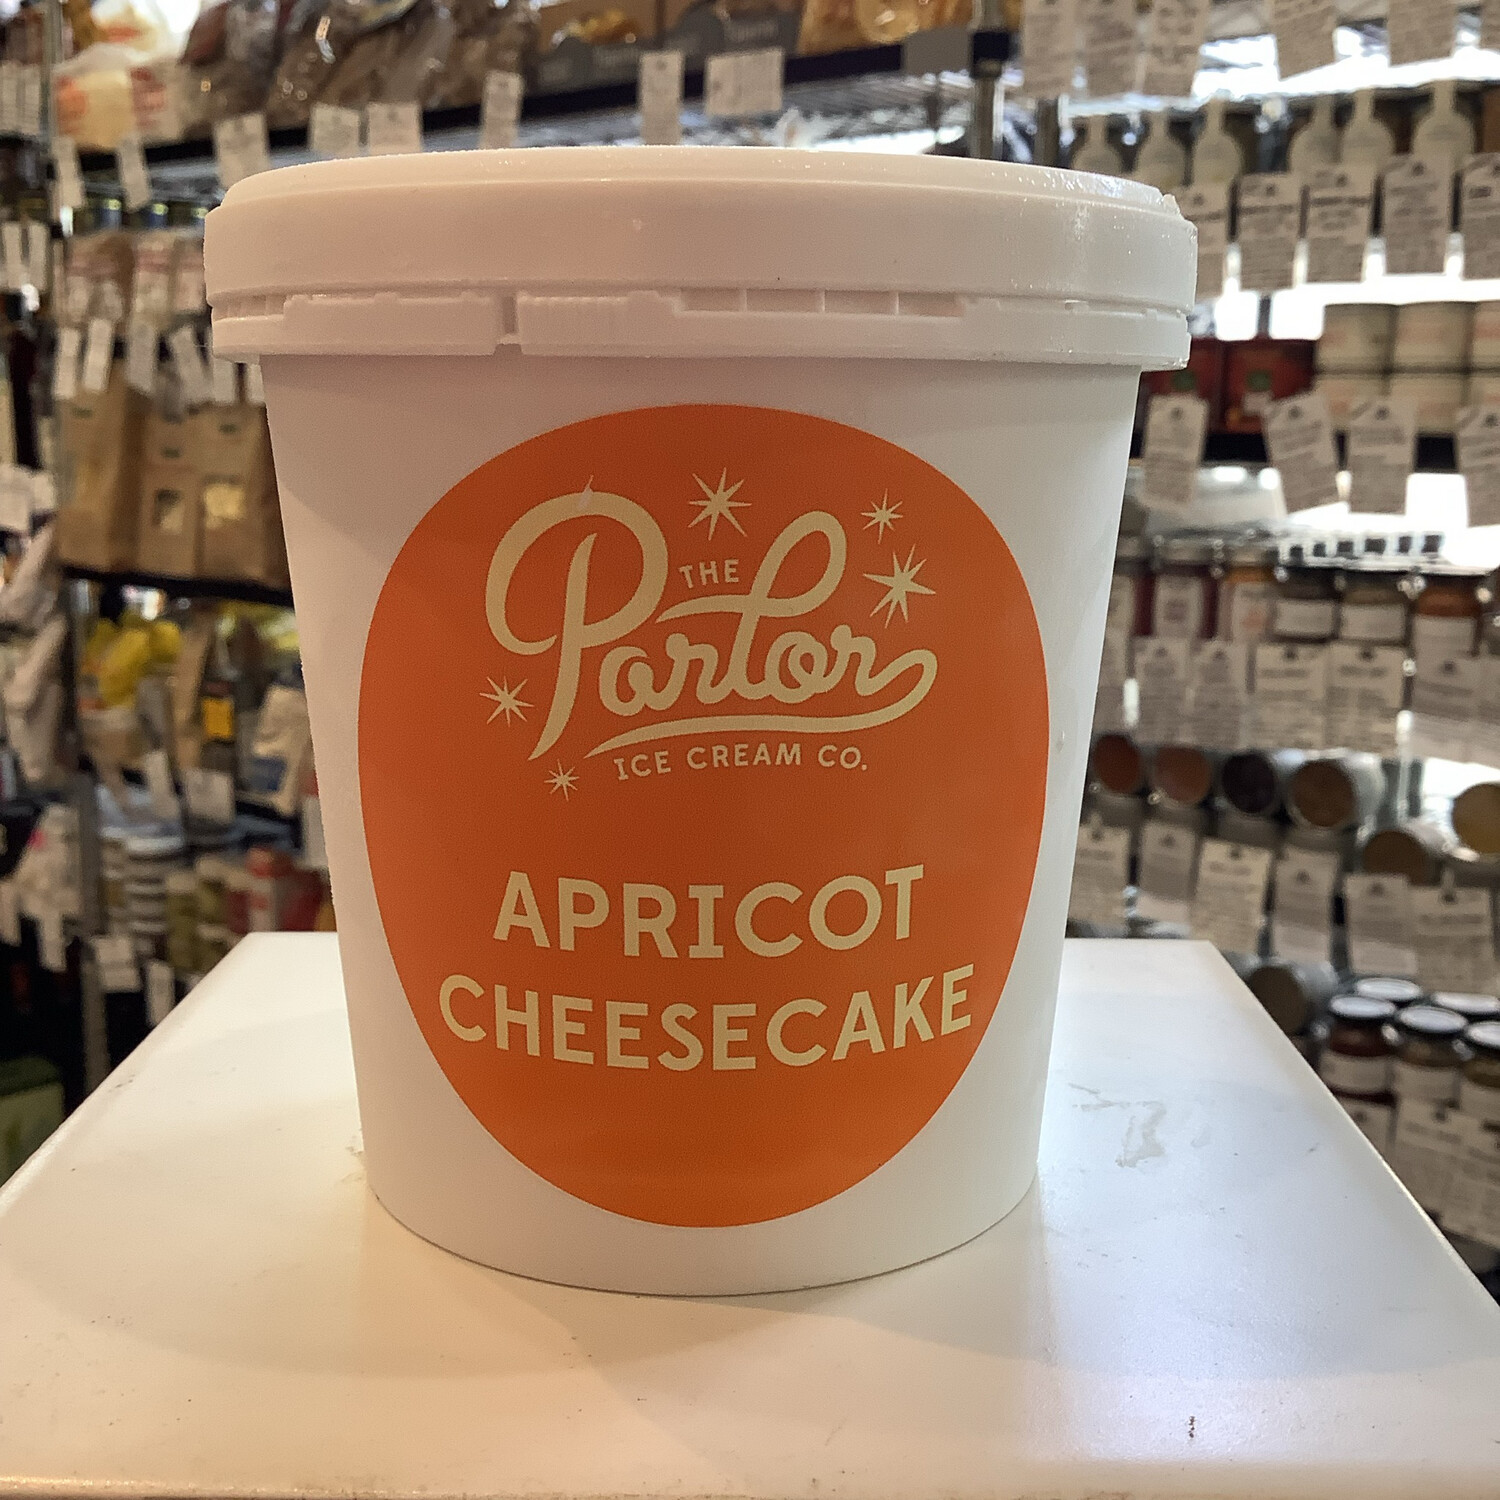 Parlor Apricot Cheesecake